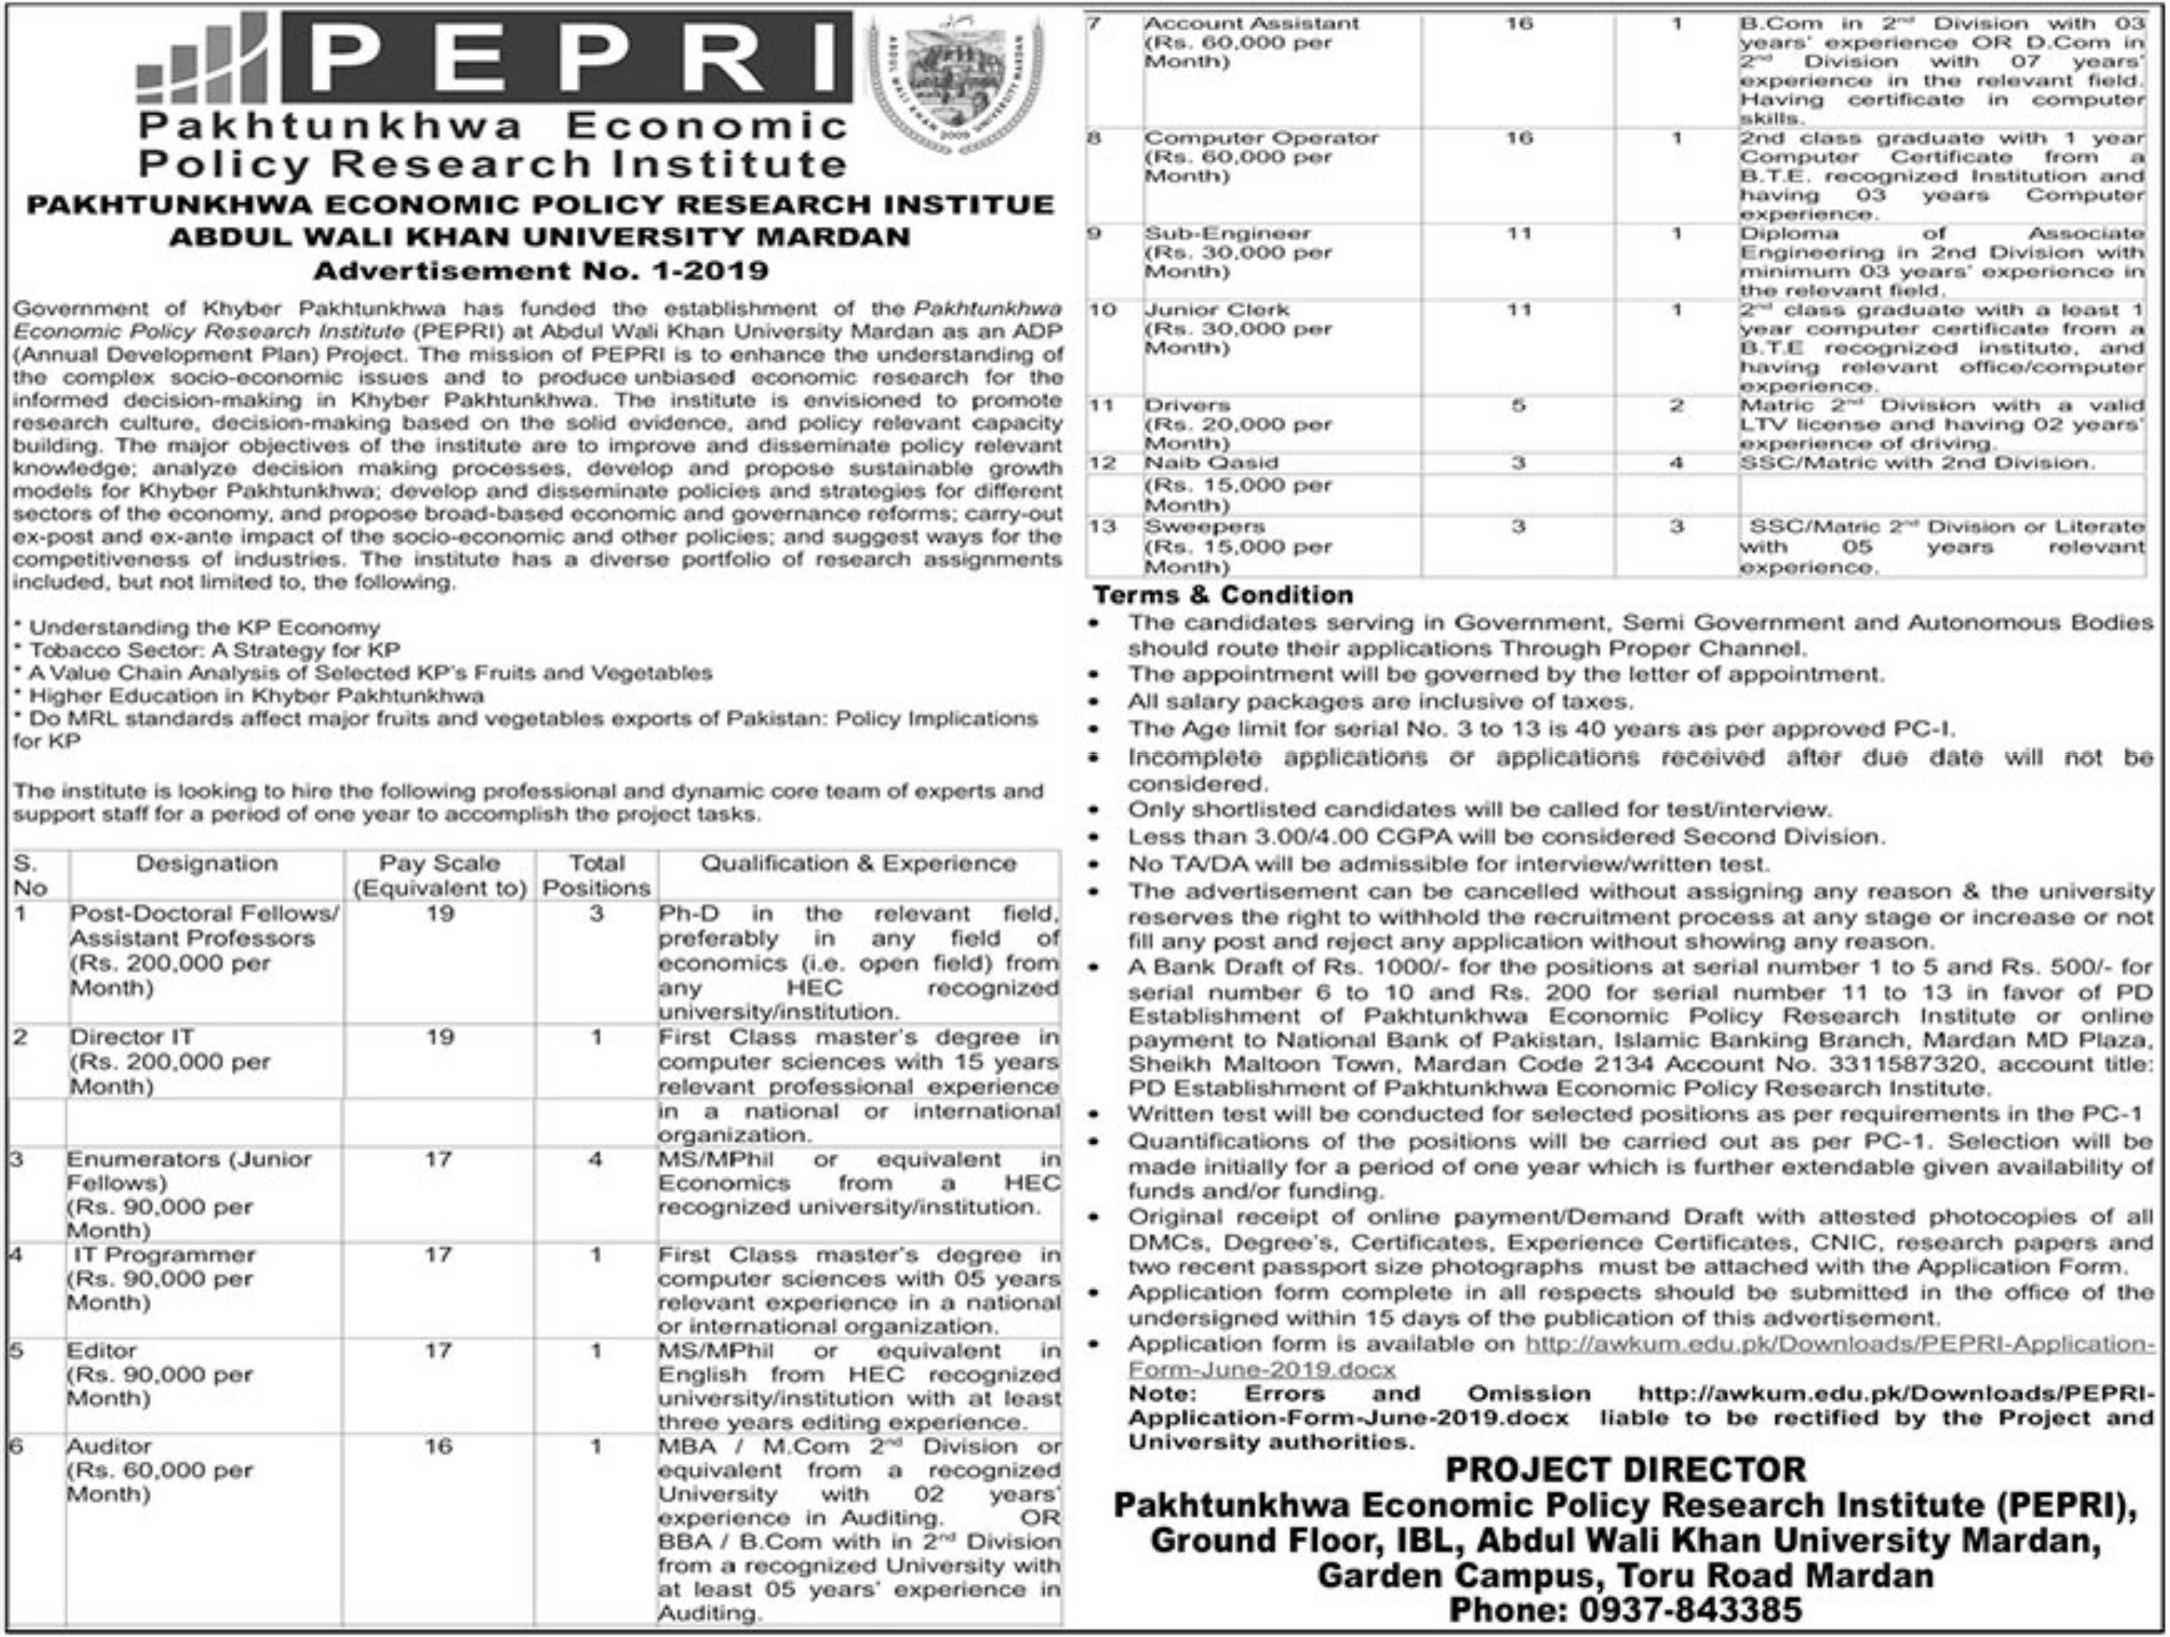 Pakhtunkhwa Economic Policy Research Institute PEPRI AWKU Mardan Jobs NTS Test Result